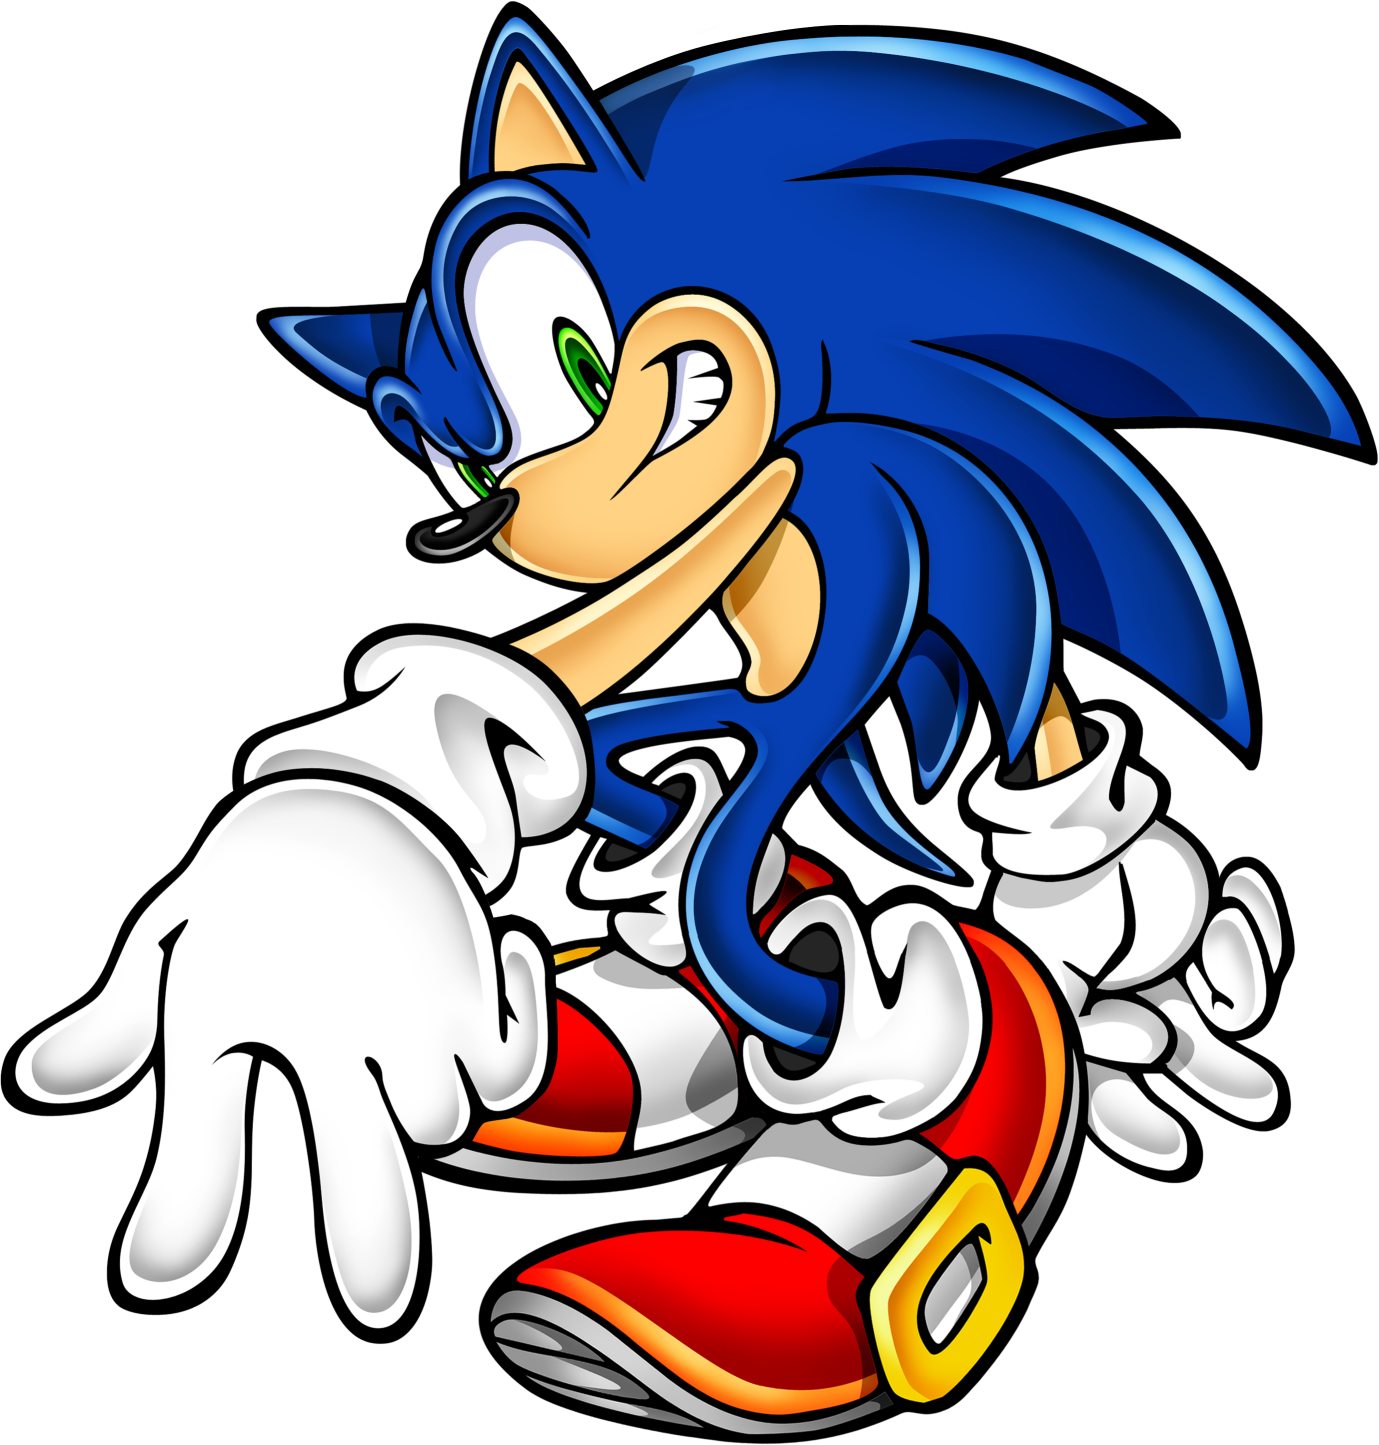 Image - Sonic Art Assets DVD - Sonic The Hedgehog - 18.png